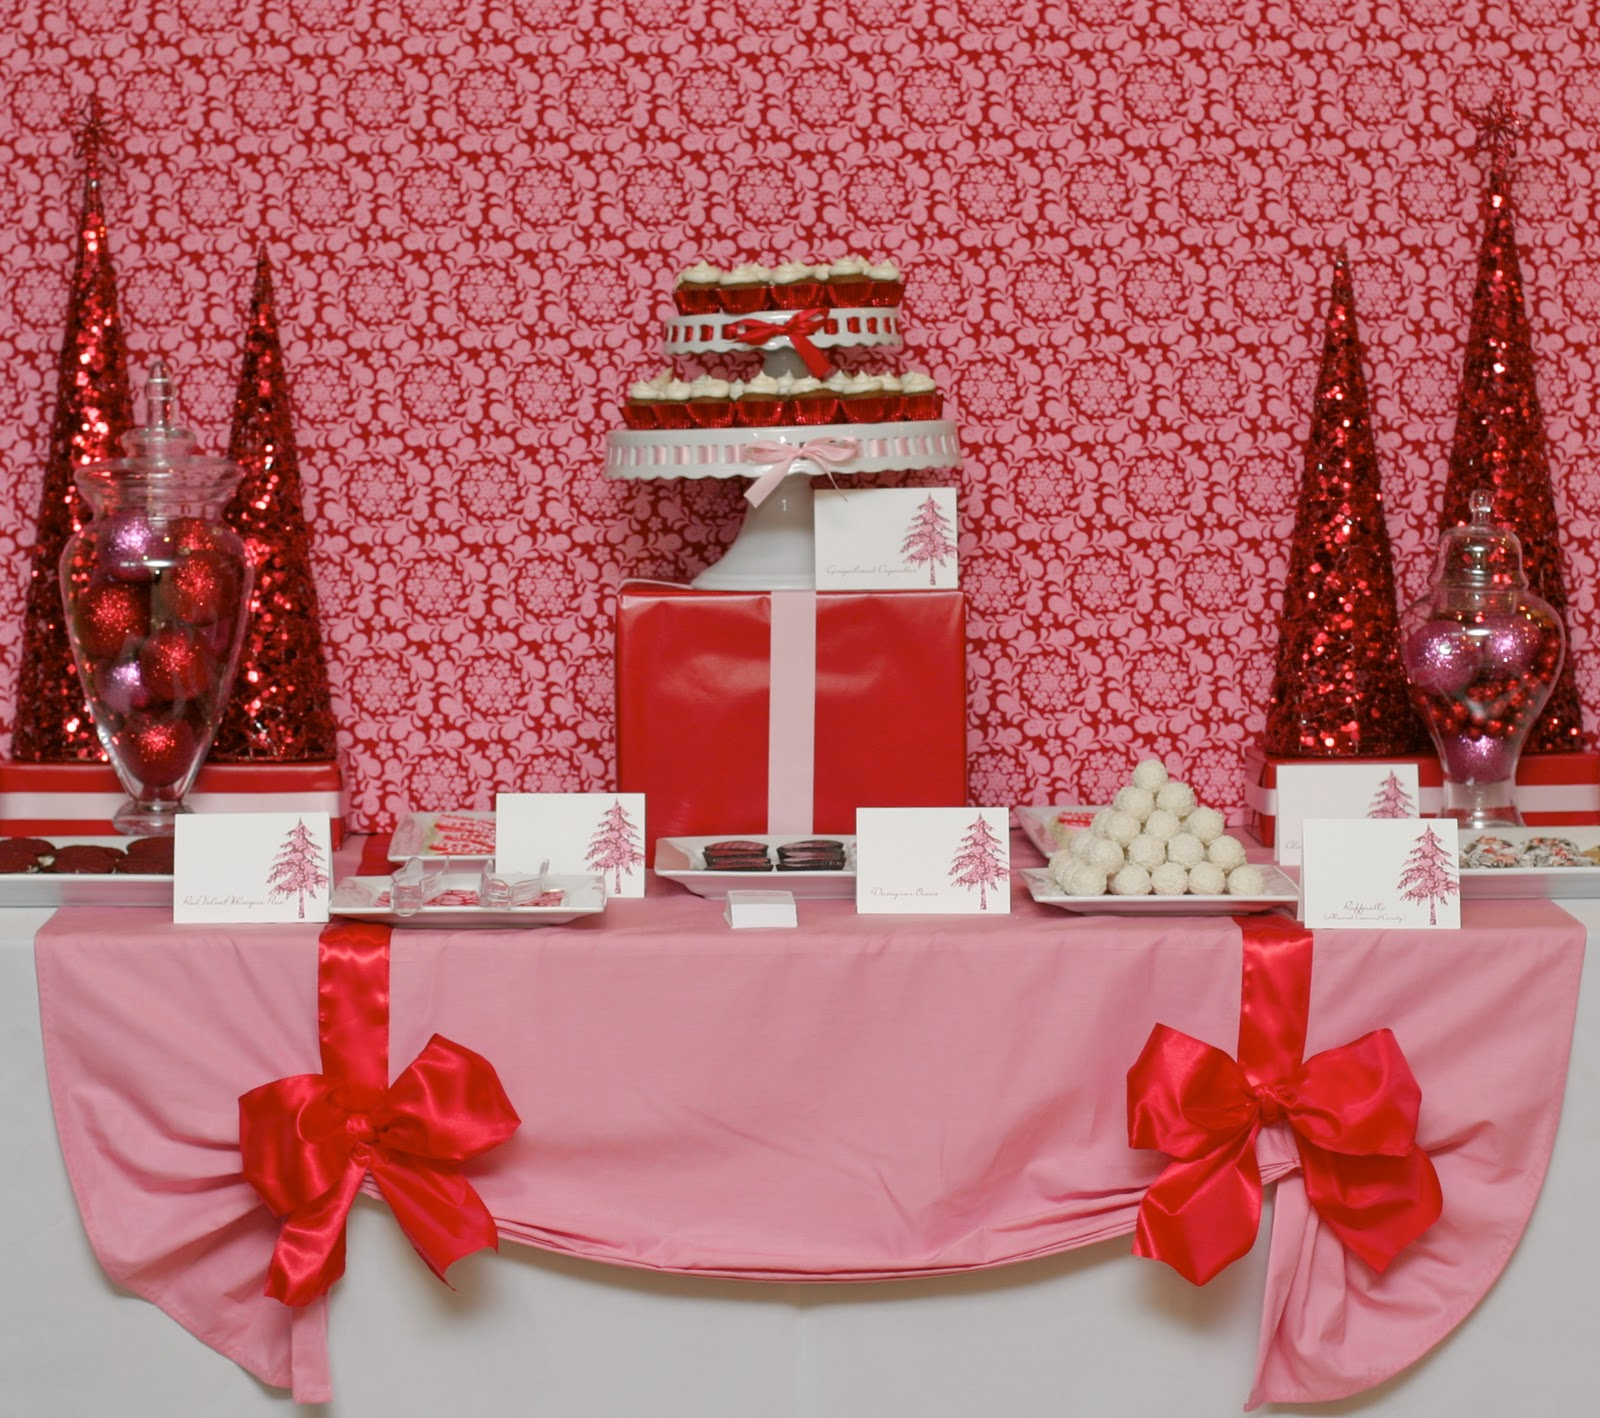 Christmas dessert table decoration ideas - Pink And Red Holiday Dessert Table